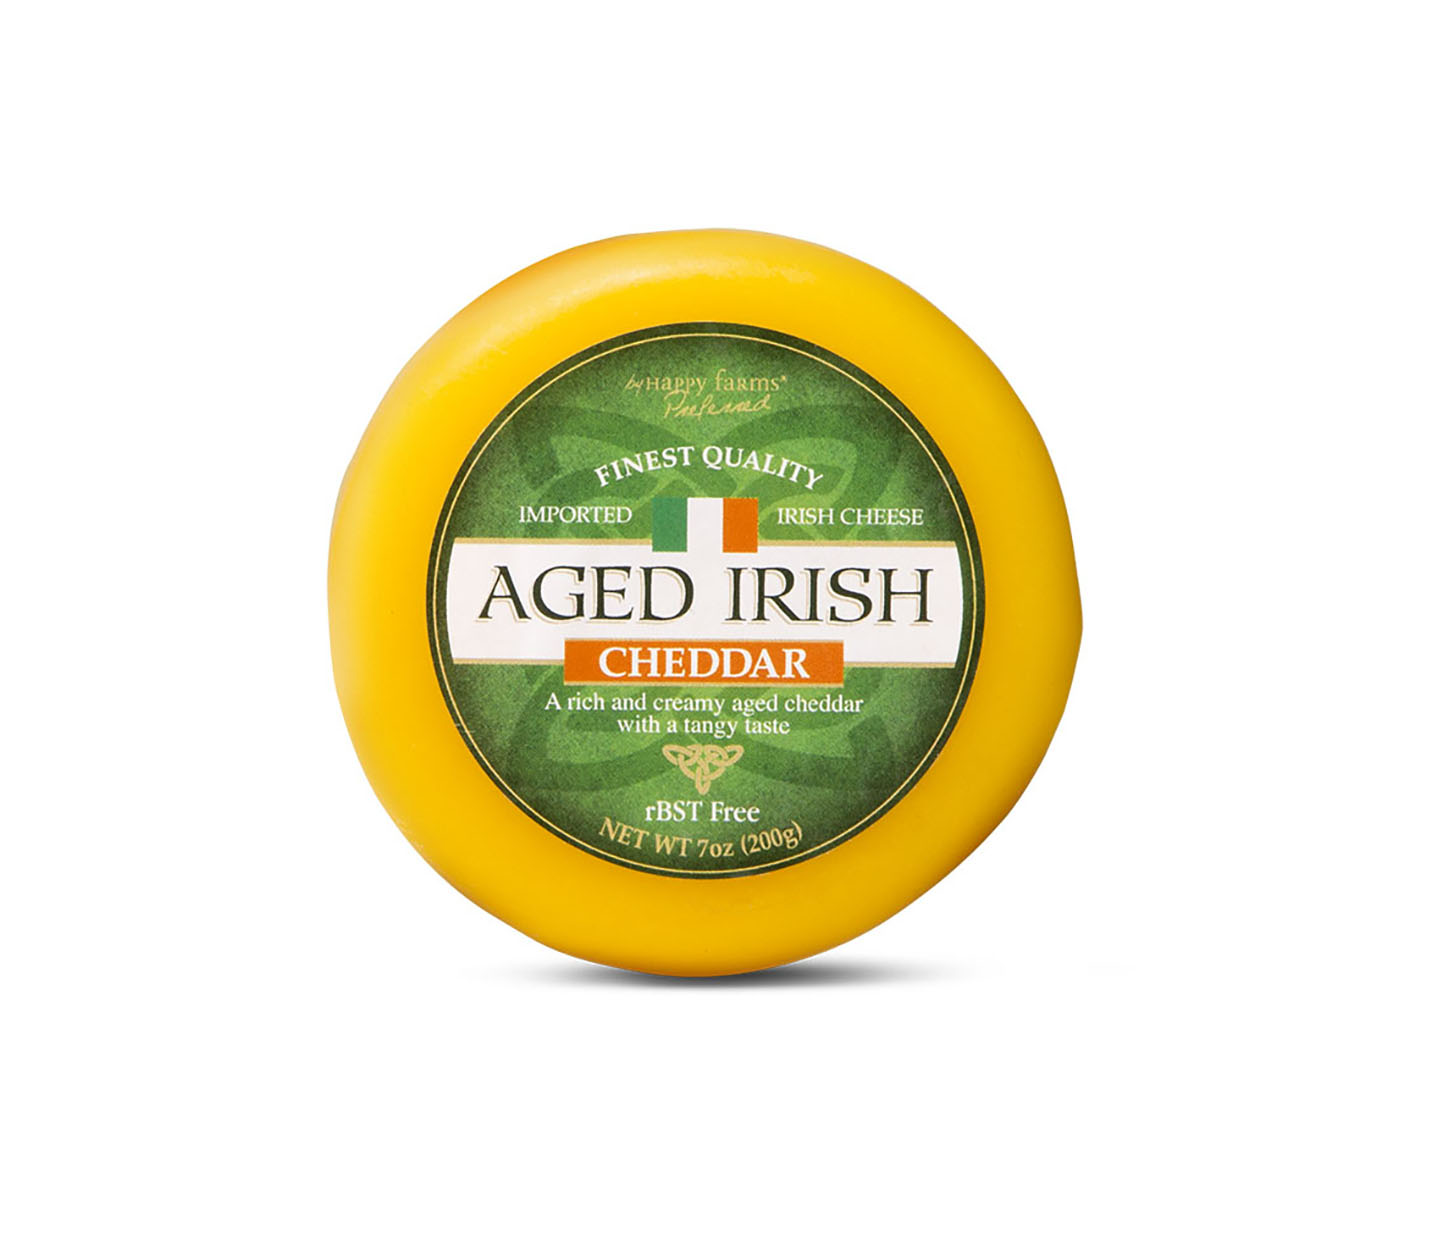 Round Aged Irish Cheddar packaged in yellow wax